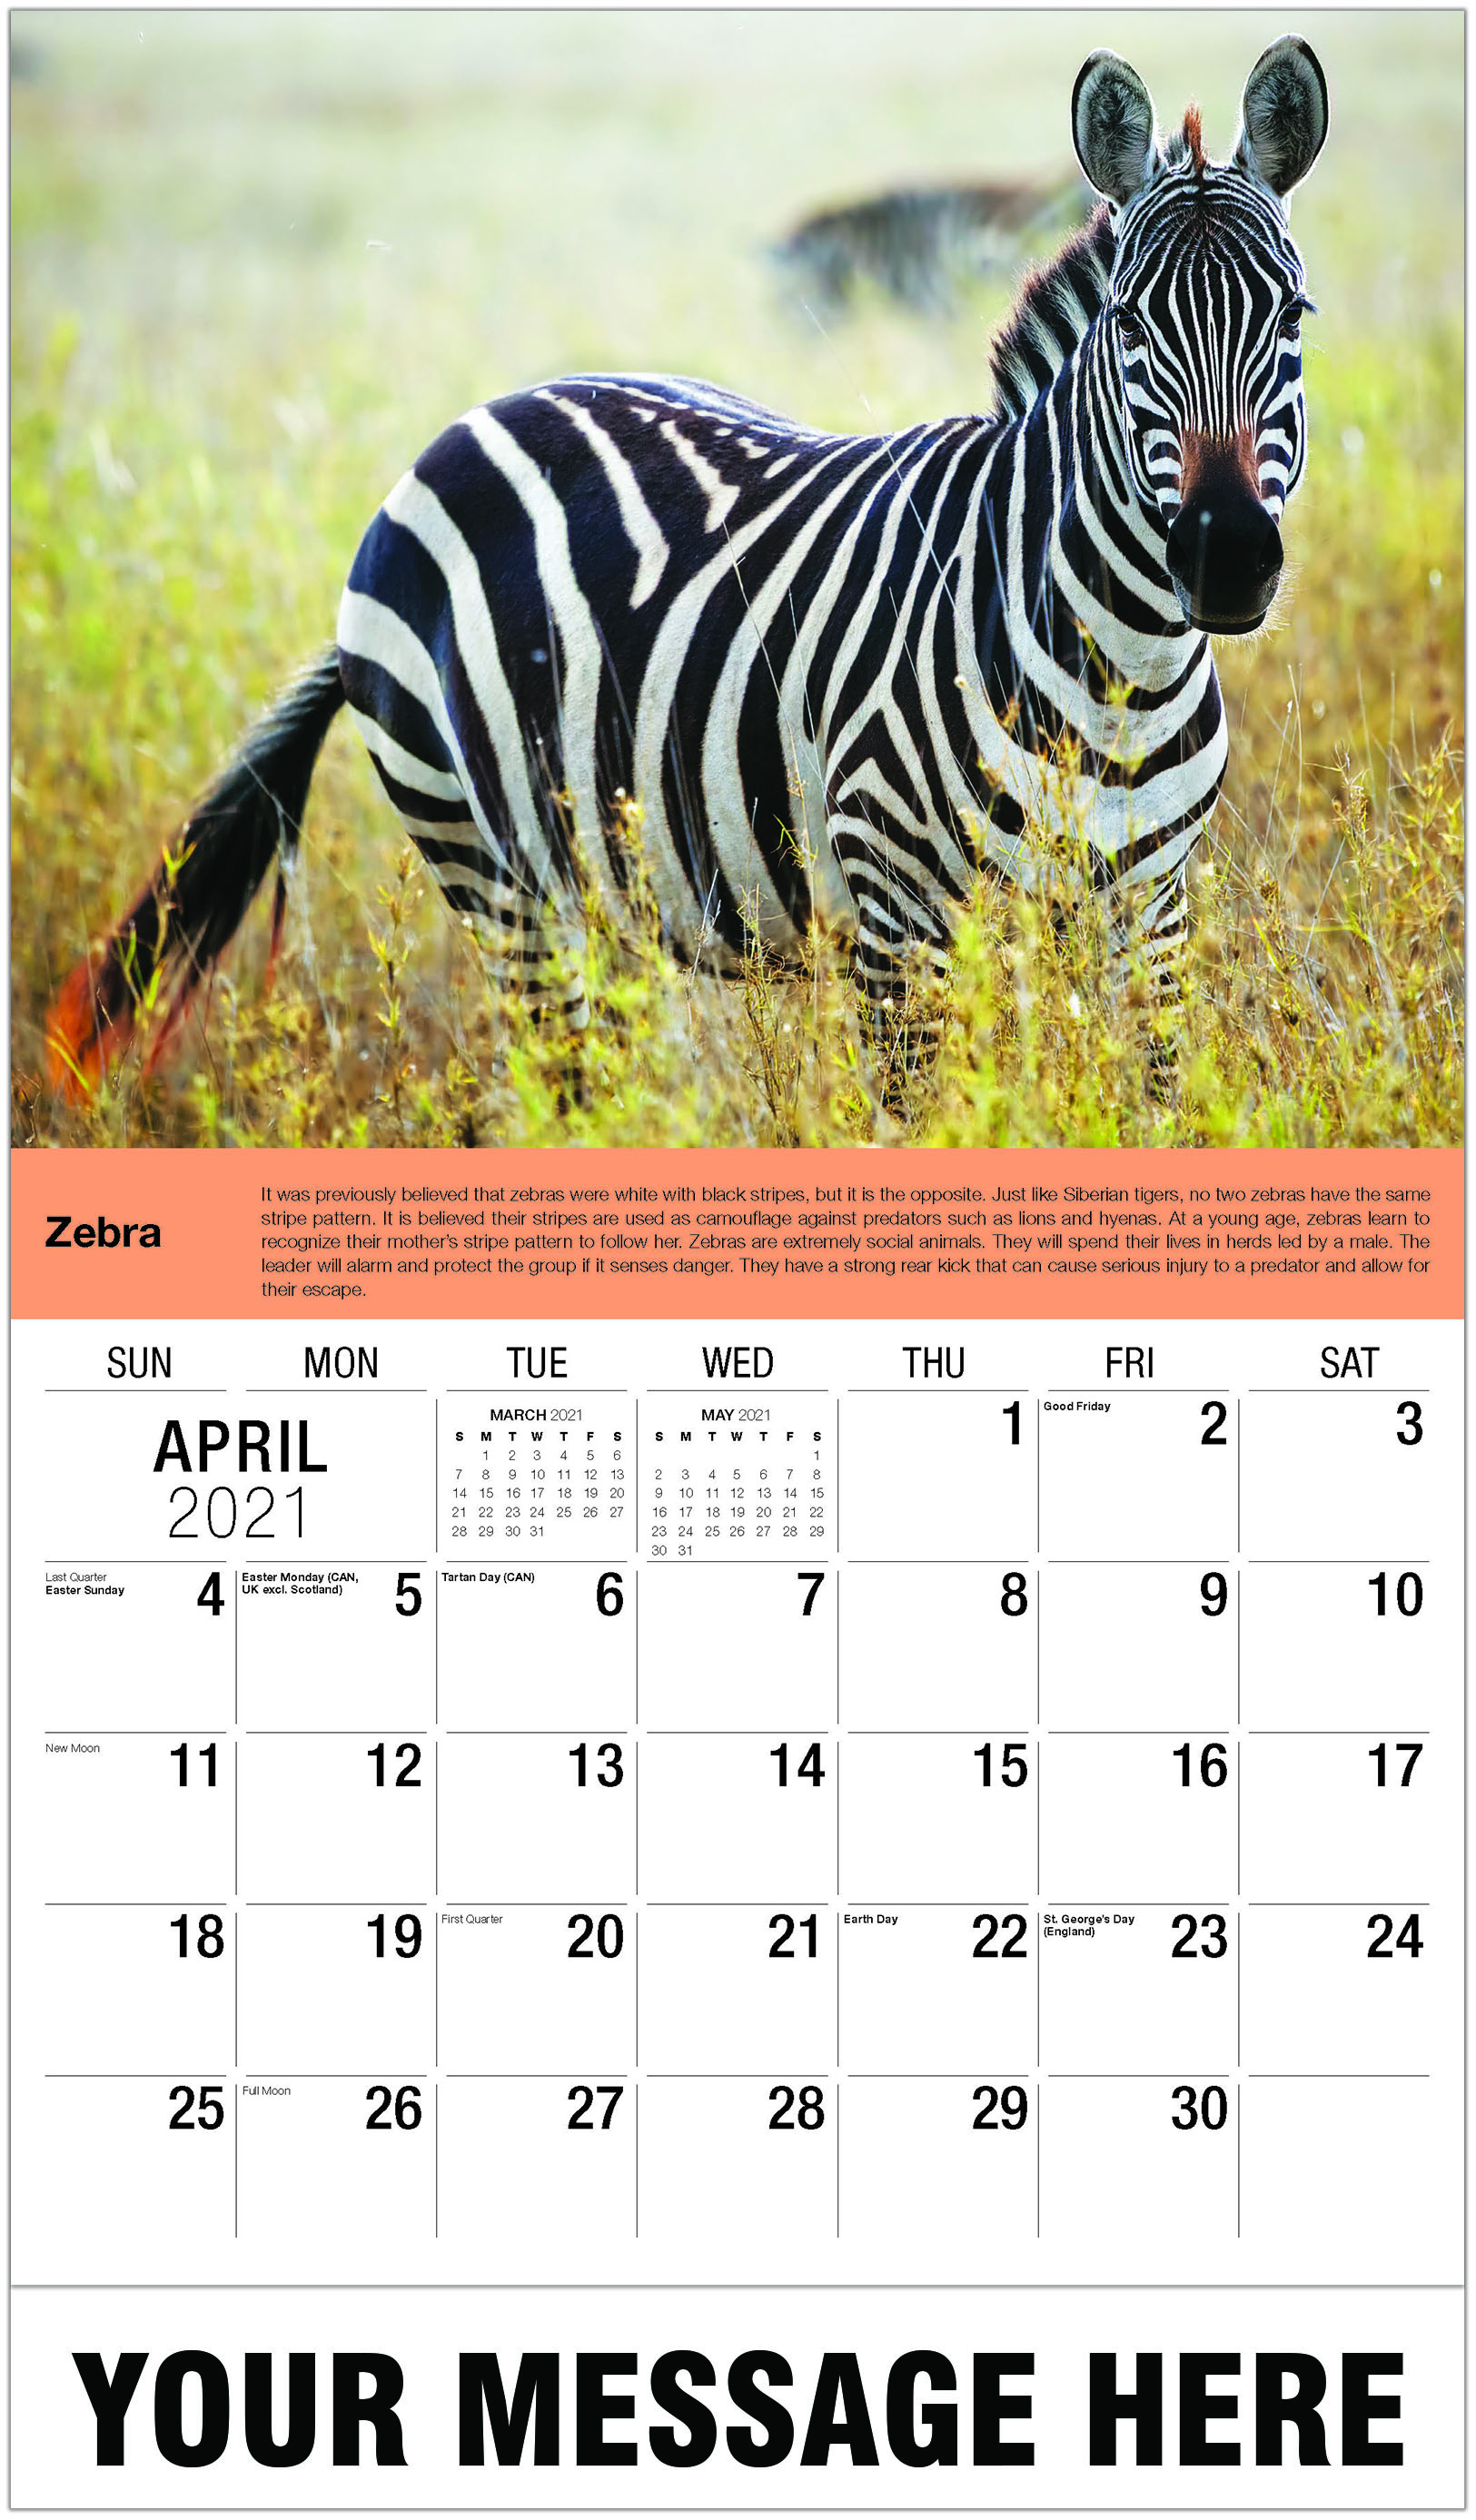 Zebra - April - International Wildlife 2021 Promotional Calendar